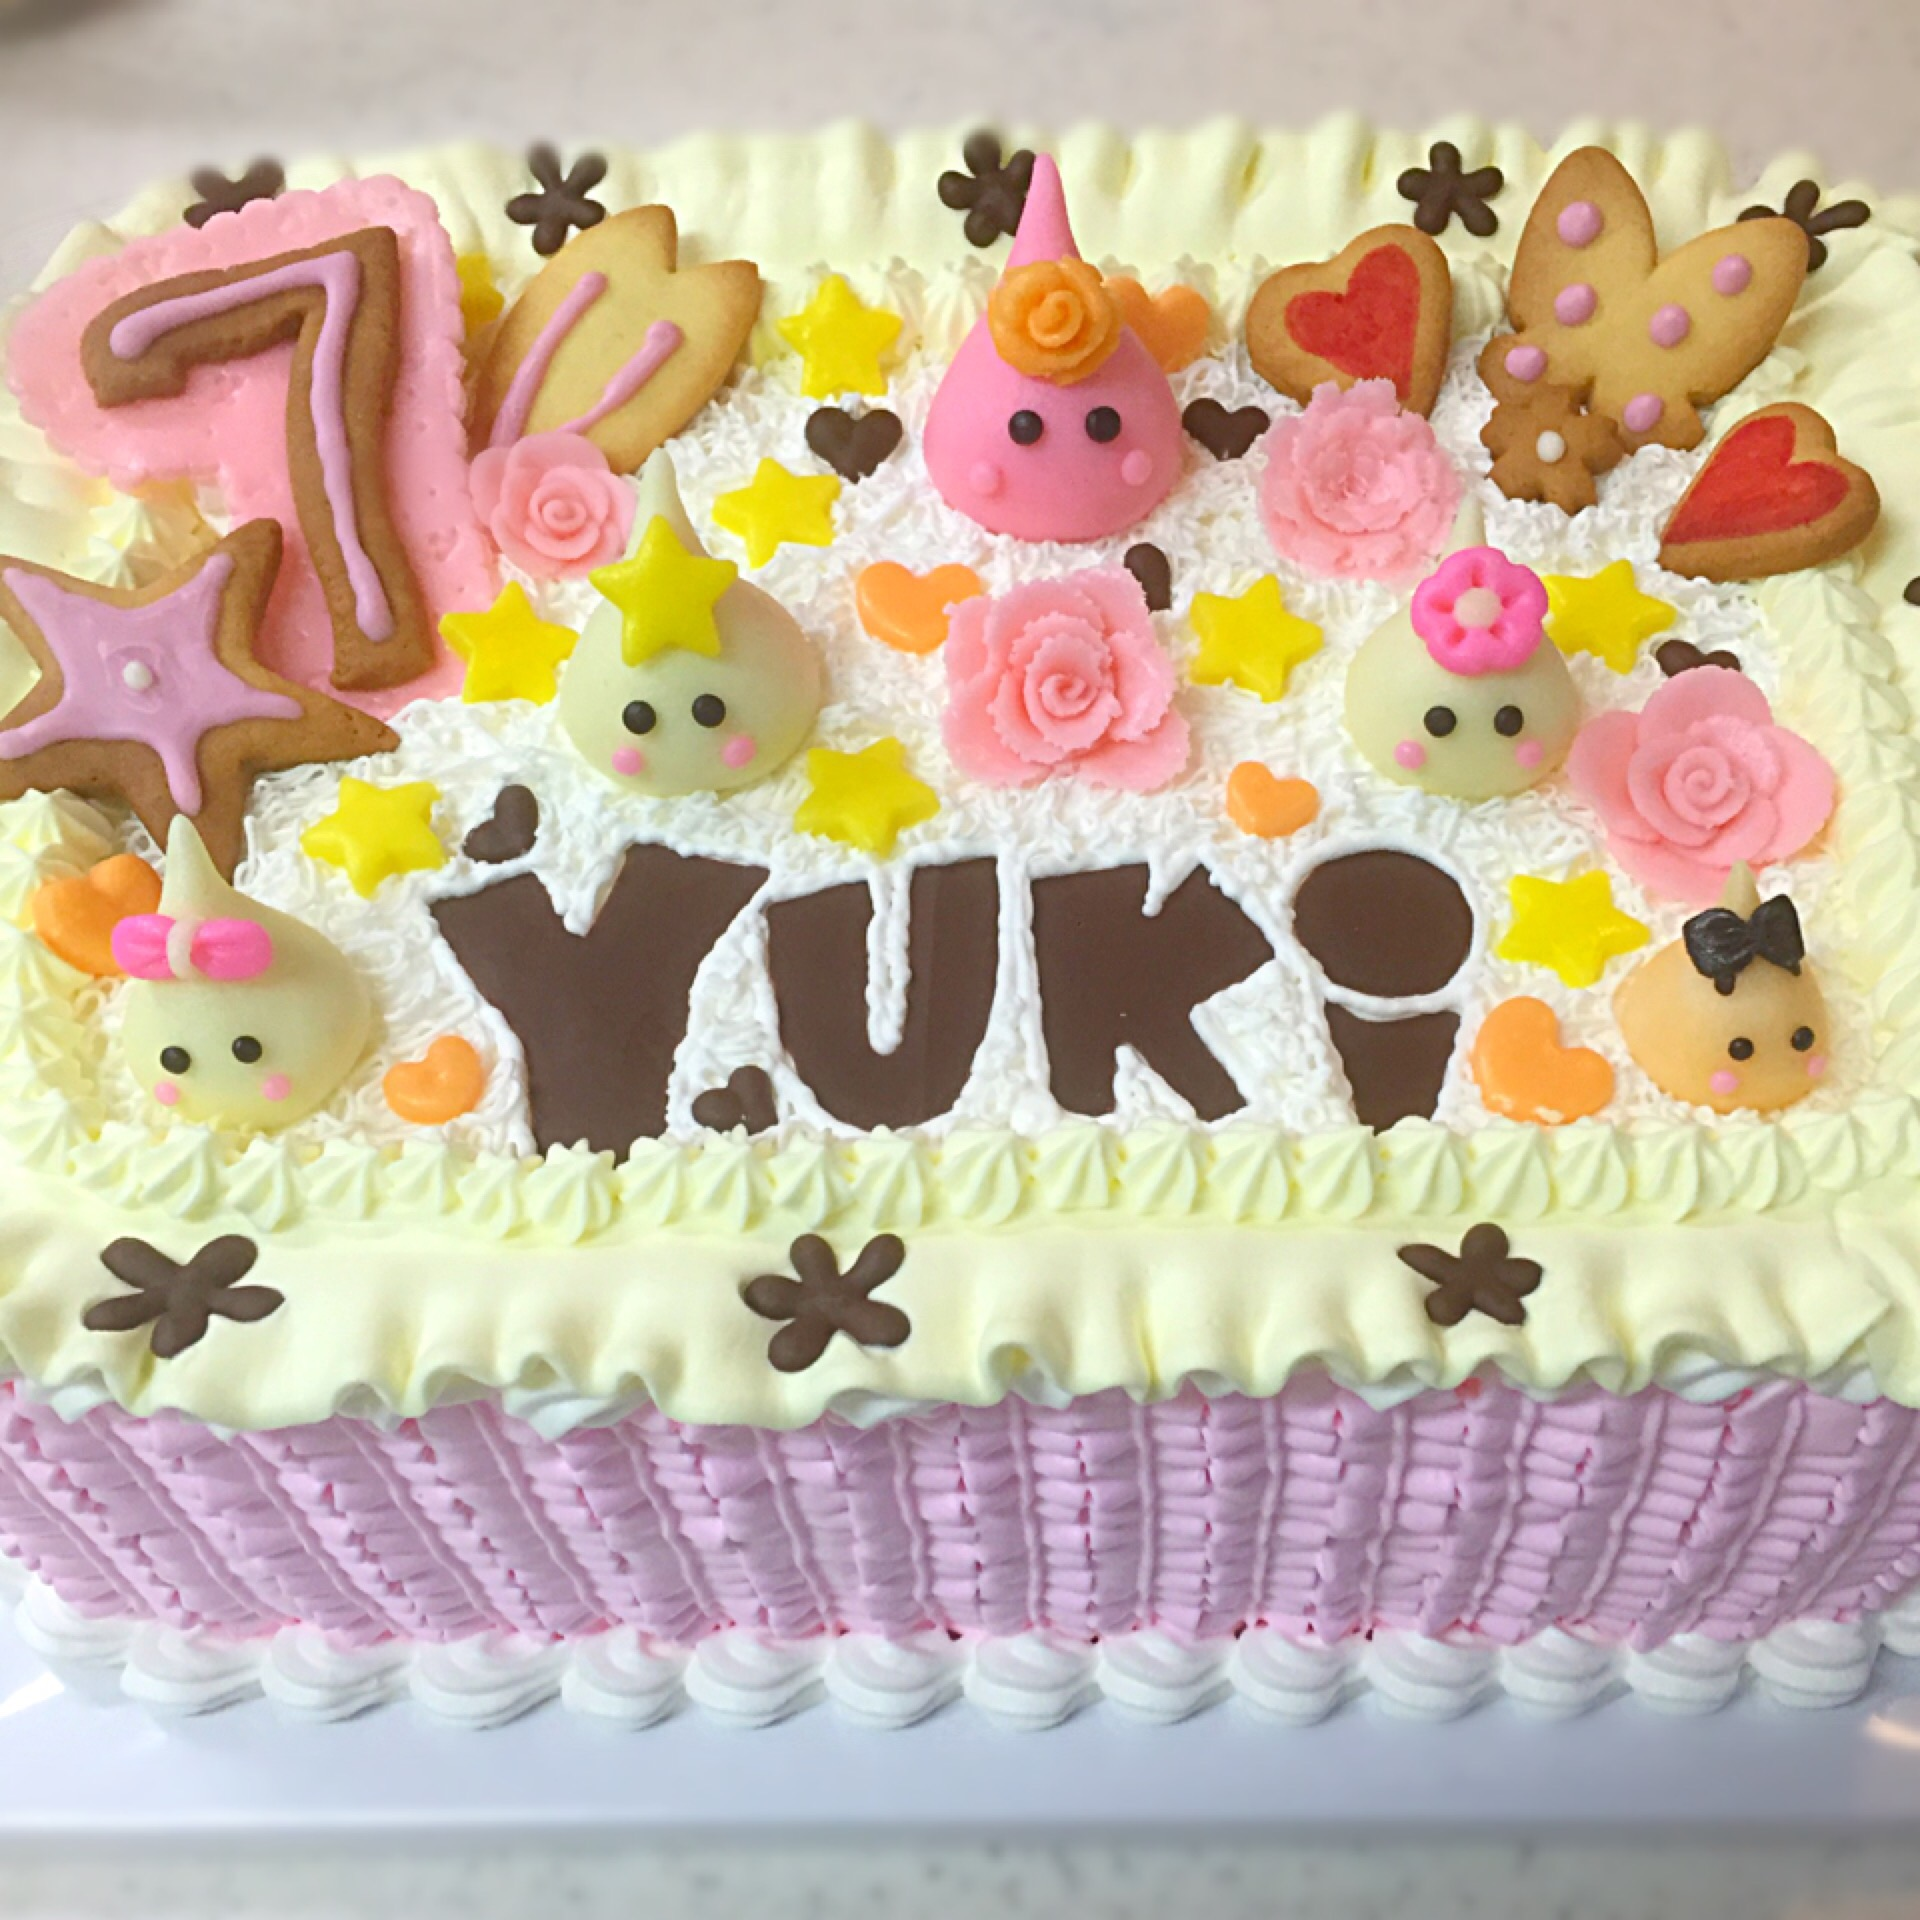 Yuki's birthday cake